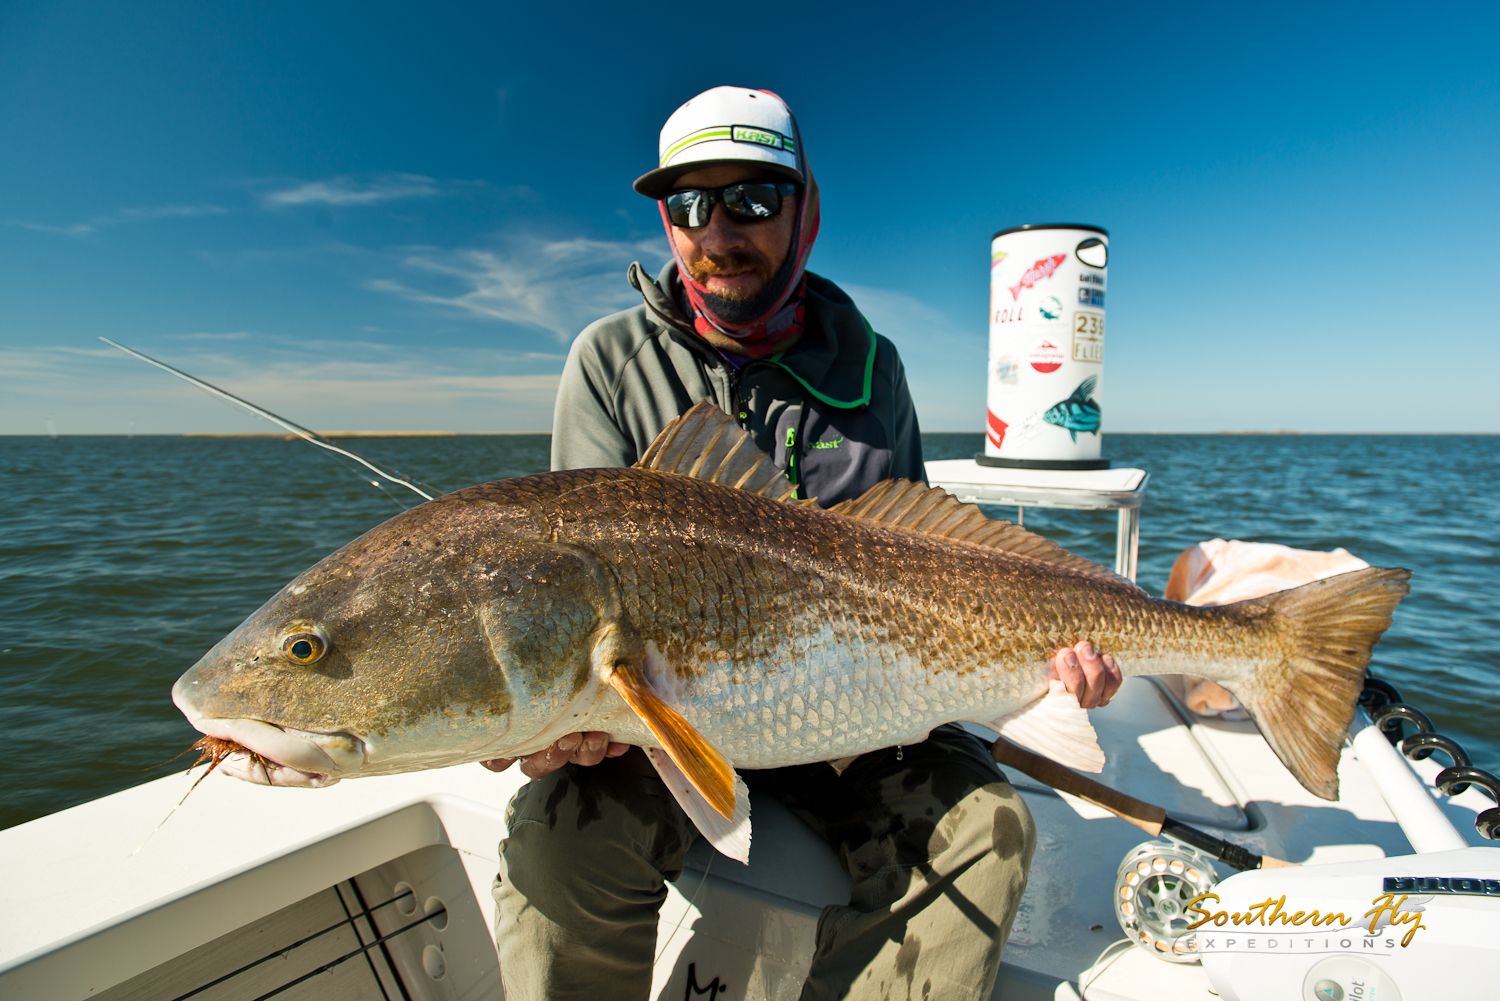 Fly Fishing Trips with Southern Fly Expeditions and Captain Brandon Keck